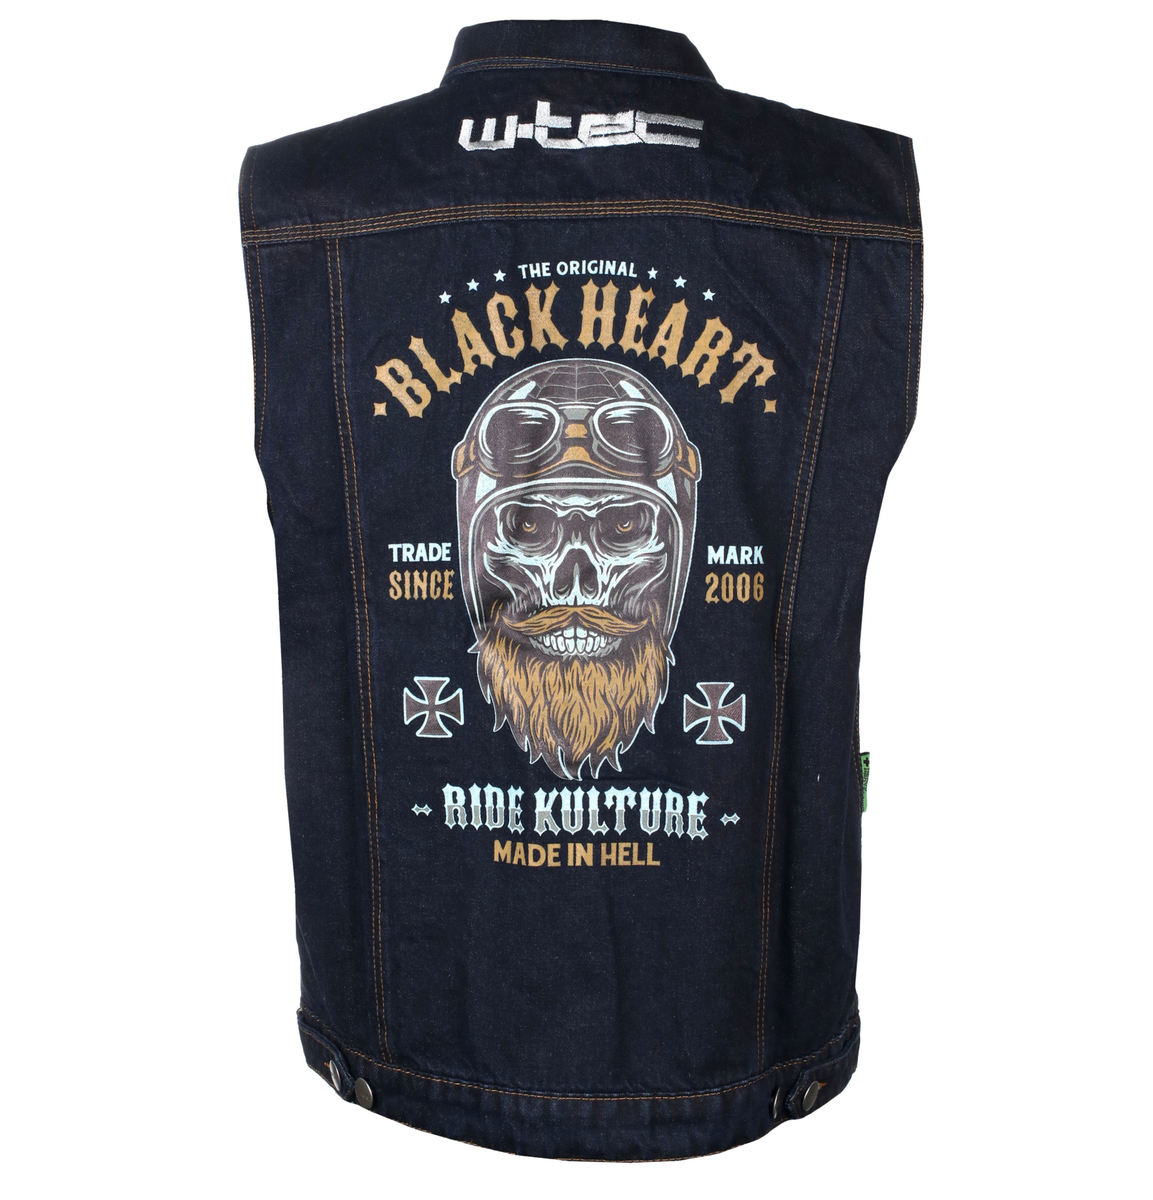 vesta BLACK HEART WHISKERY XL